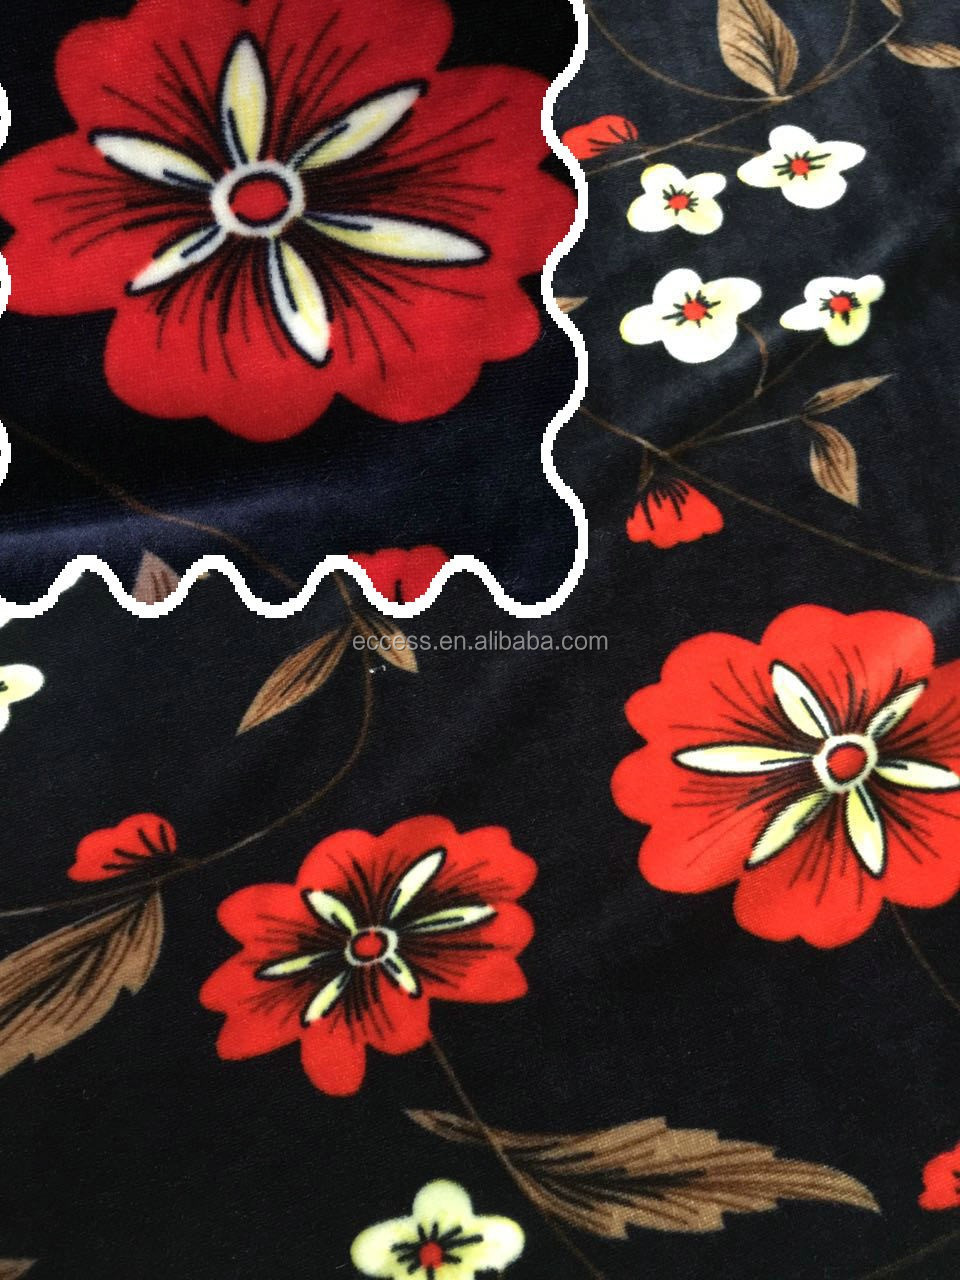 100% polyeste printing soft velvet fabric for garments and home textile